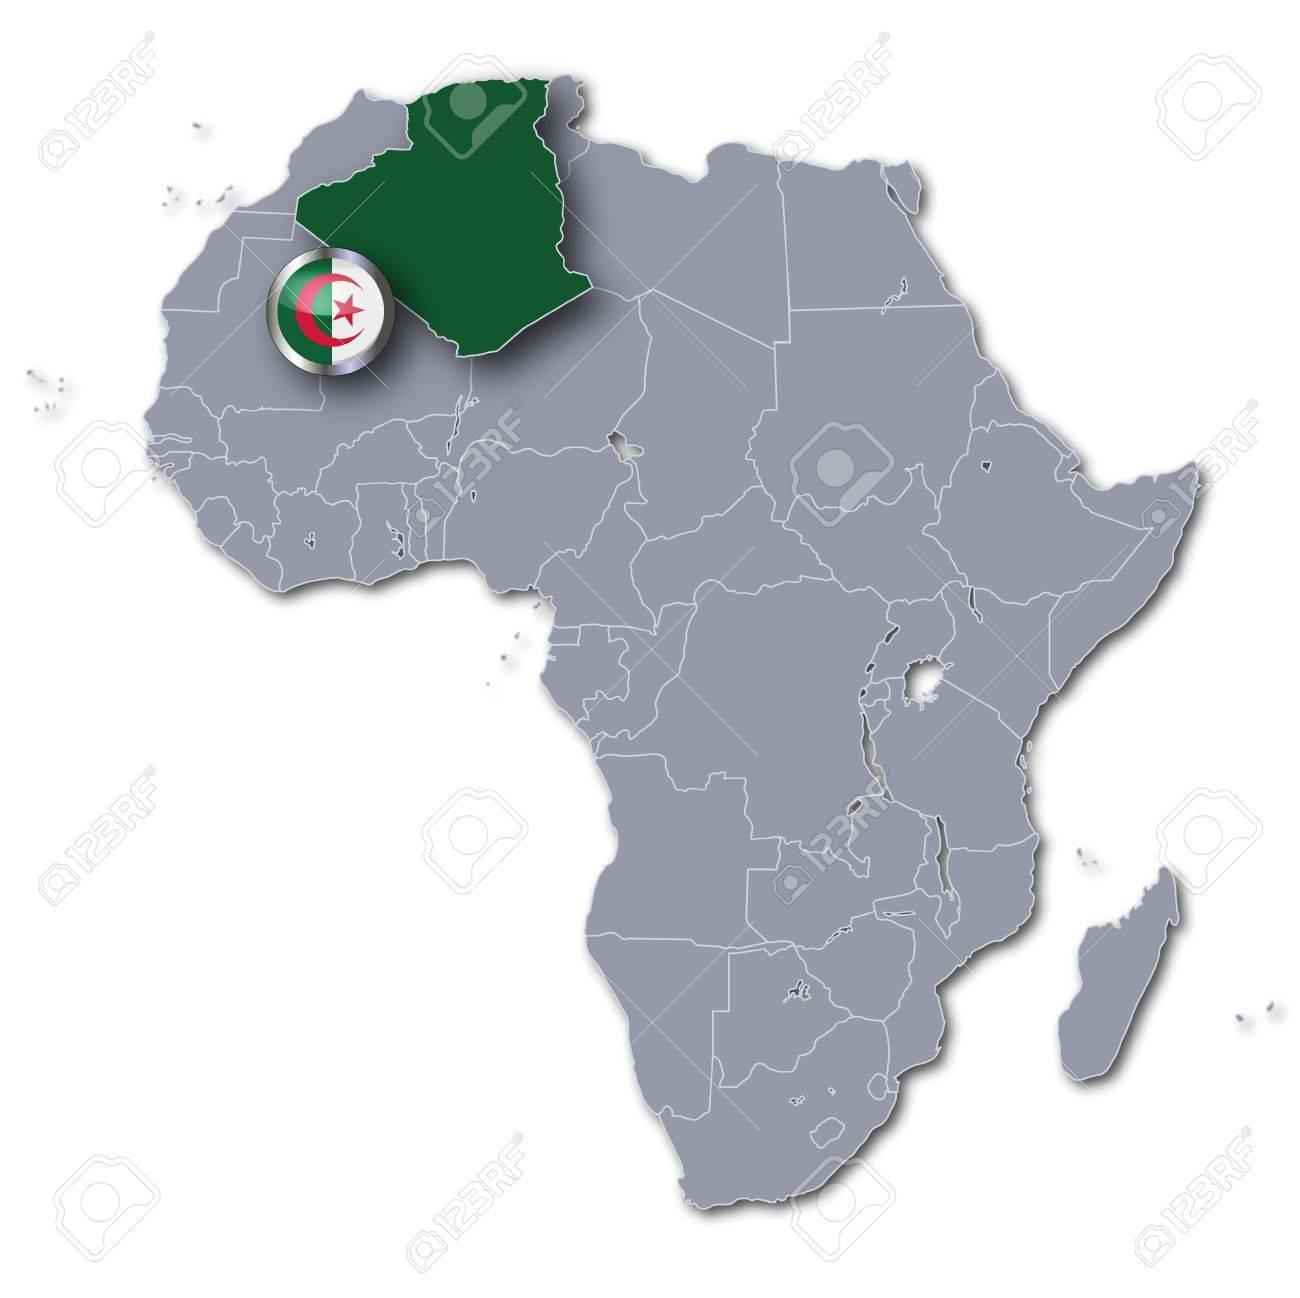 Africa Map With Algeria Stock Photo Picture And Royalty Free Image